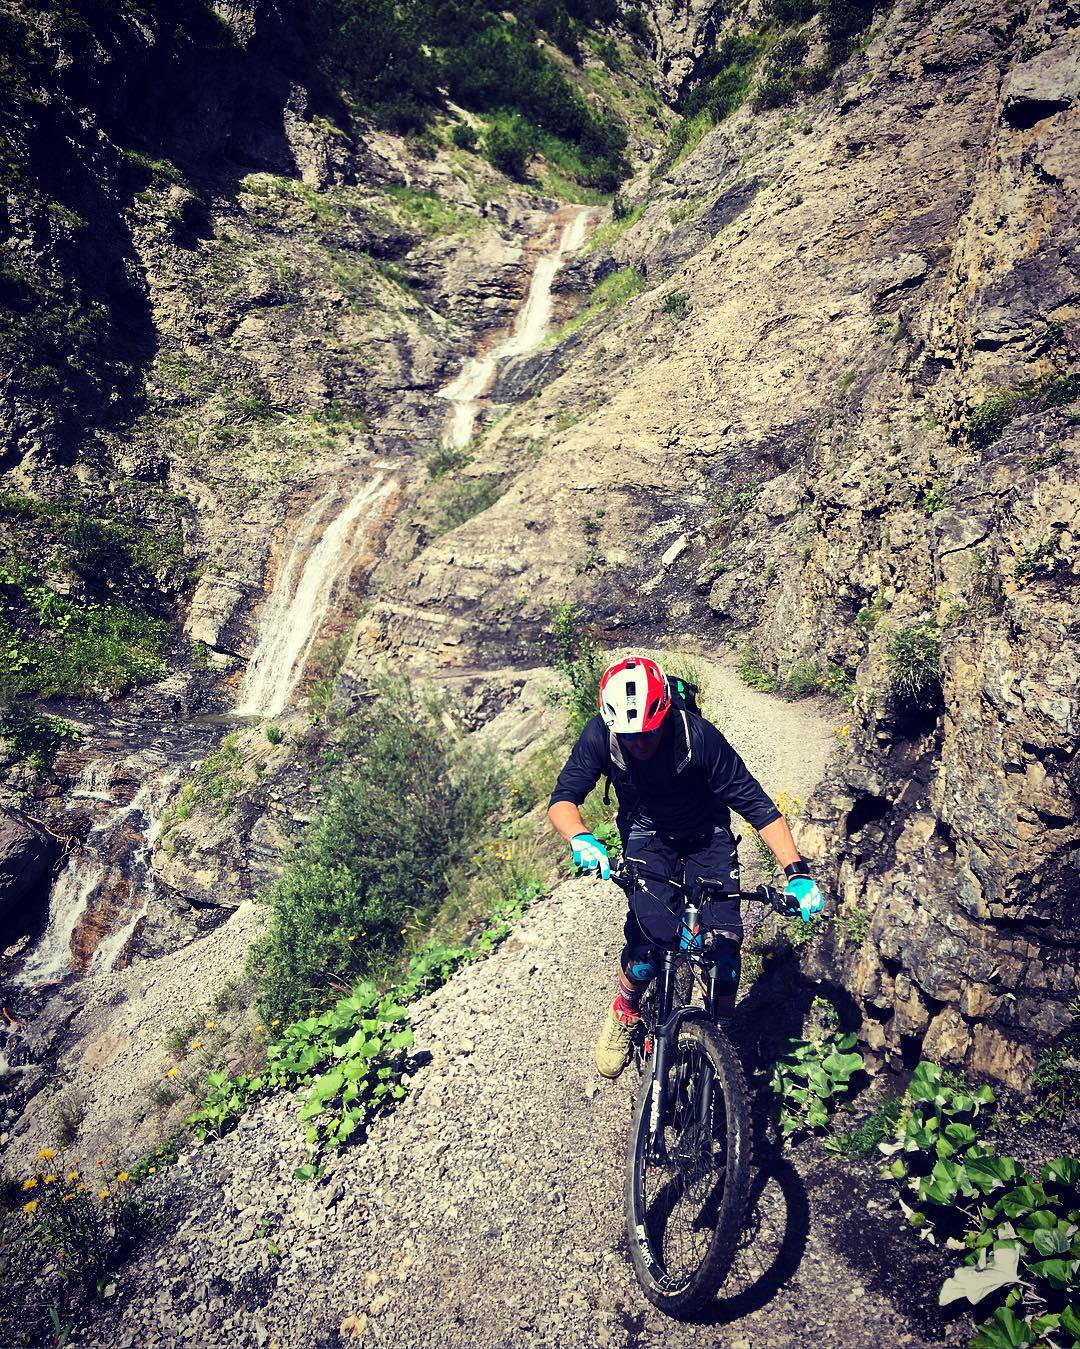 The road less travelled. #eMTB #Haibike #ride100percent